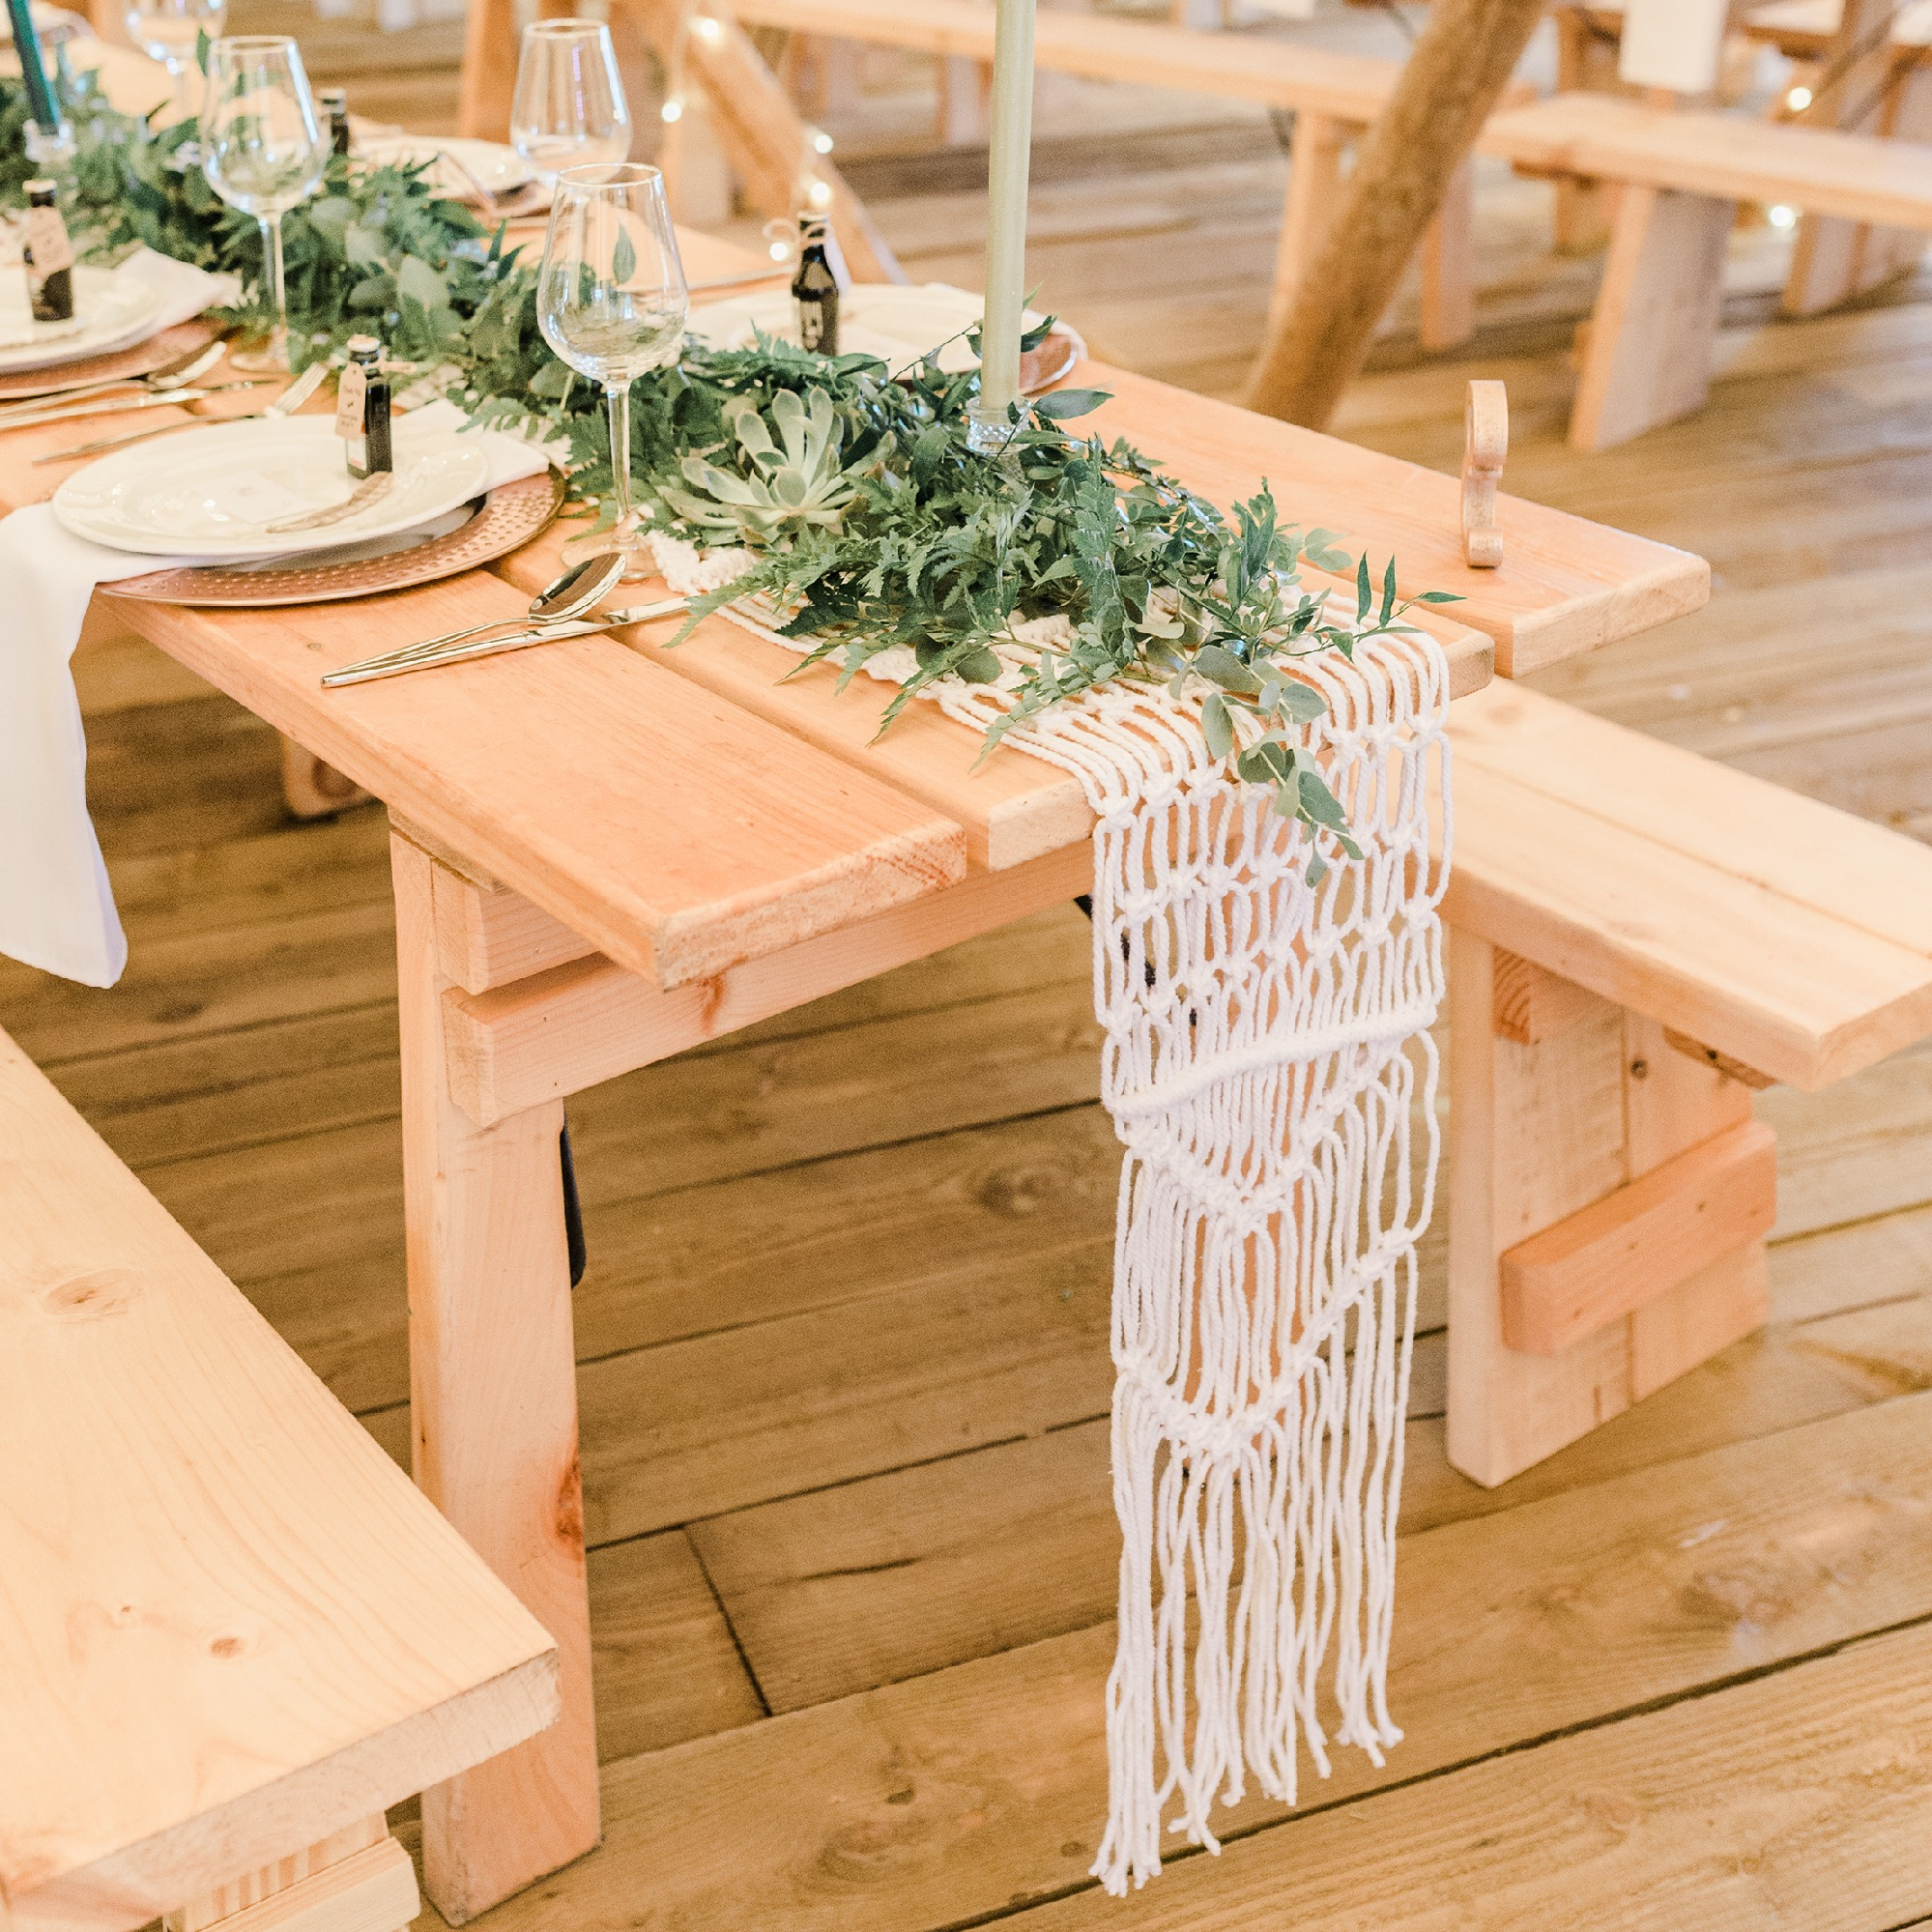 MACRAME TABLE RUNNER 2.5M LONG